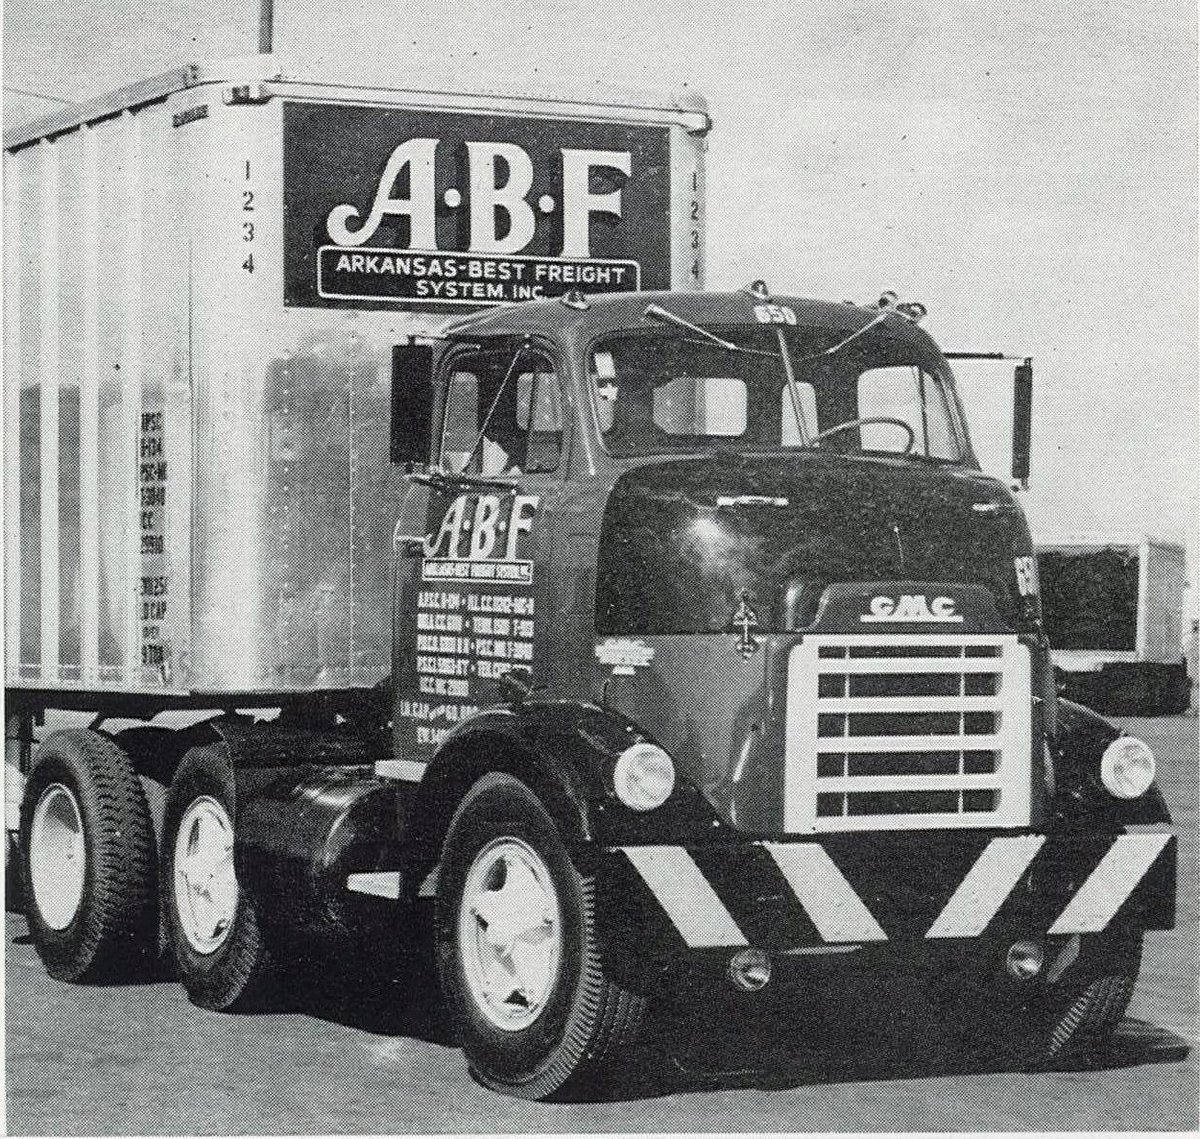 "ABF Freight on Twitter: ""Throwback Thursday: In 1957, Arkansas-Best Freight System (now known as ABF Freight) added 82 GMC DF 869 tractors to its fleet."